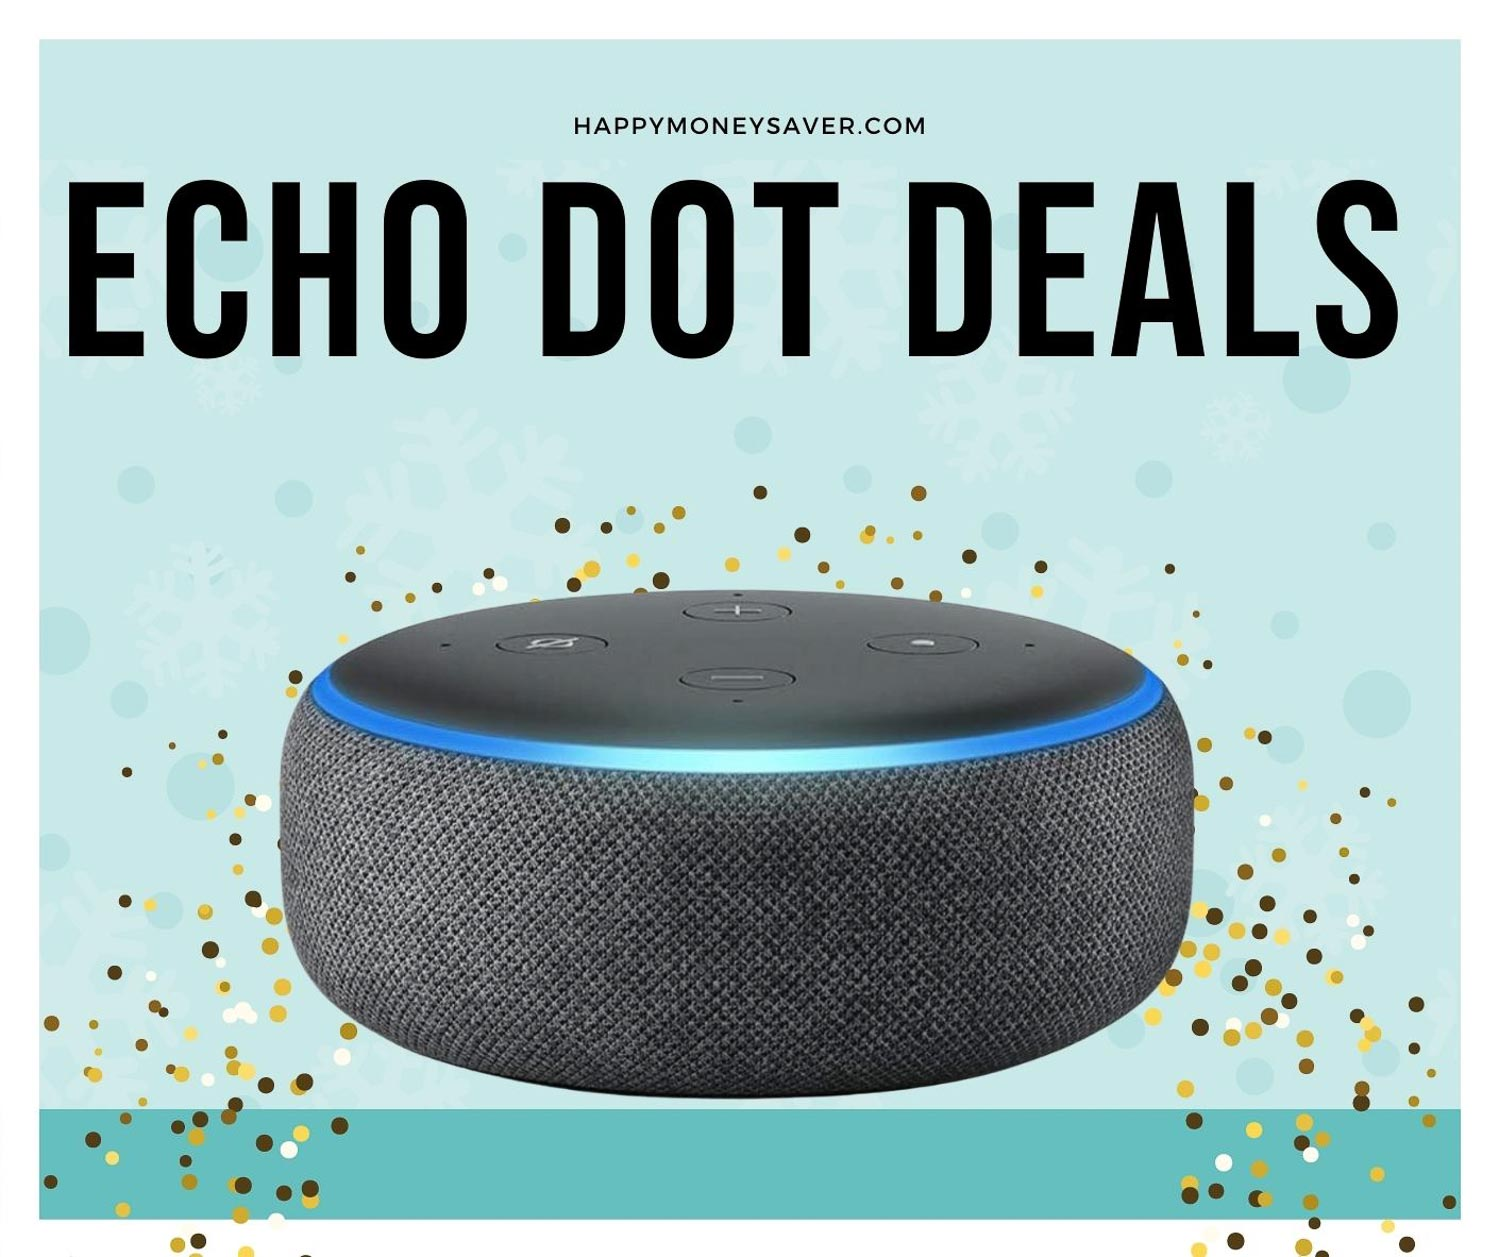 Image of the Amazon Echo 3rd generation smart home device. Black Friday 2020 smart home deals